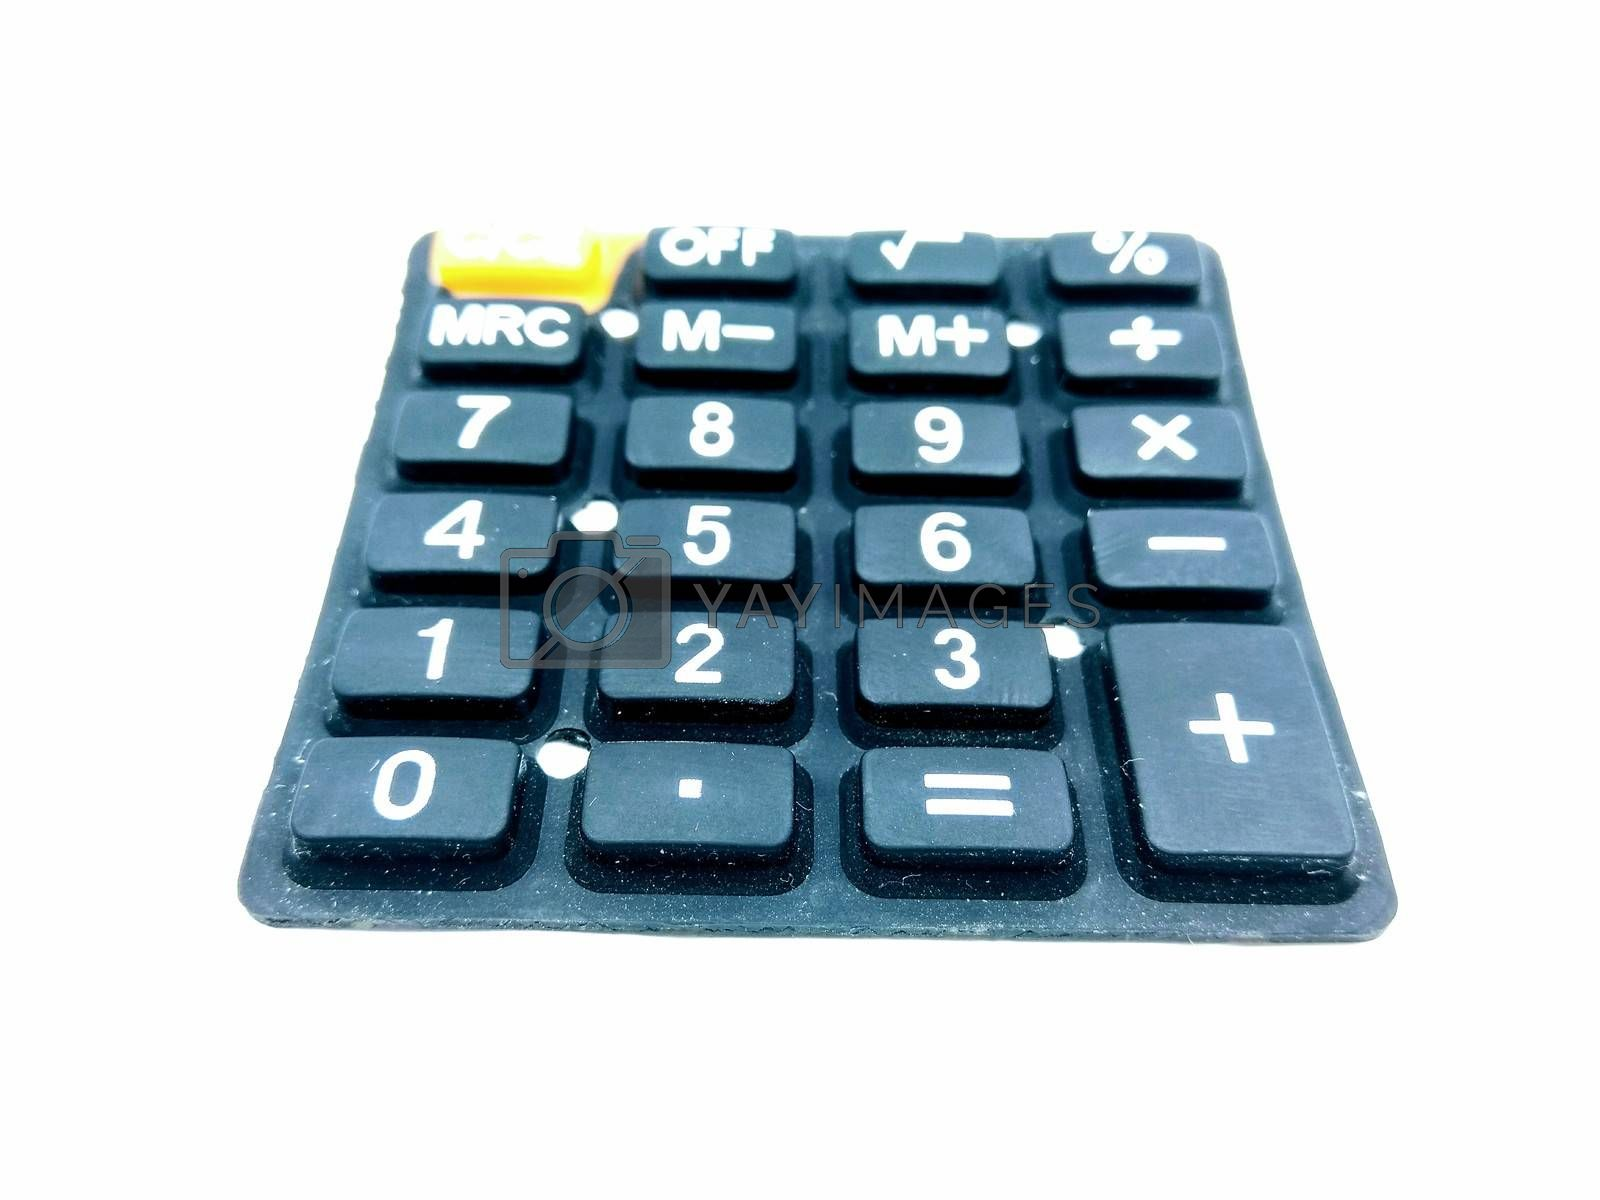 A picture of keypad